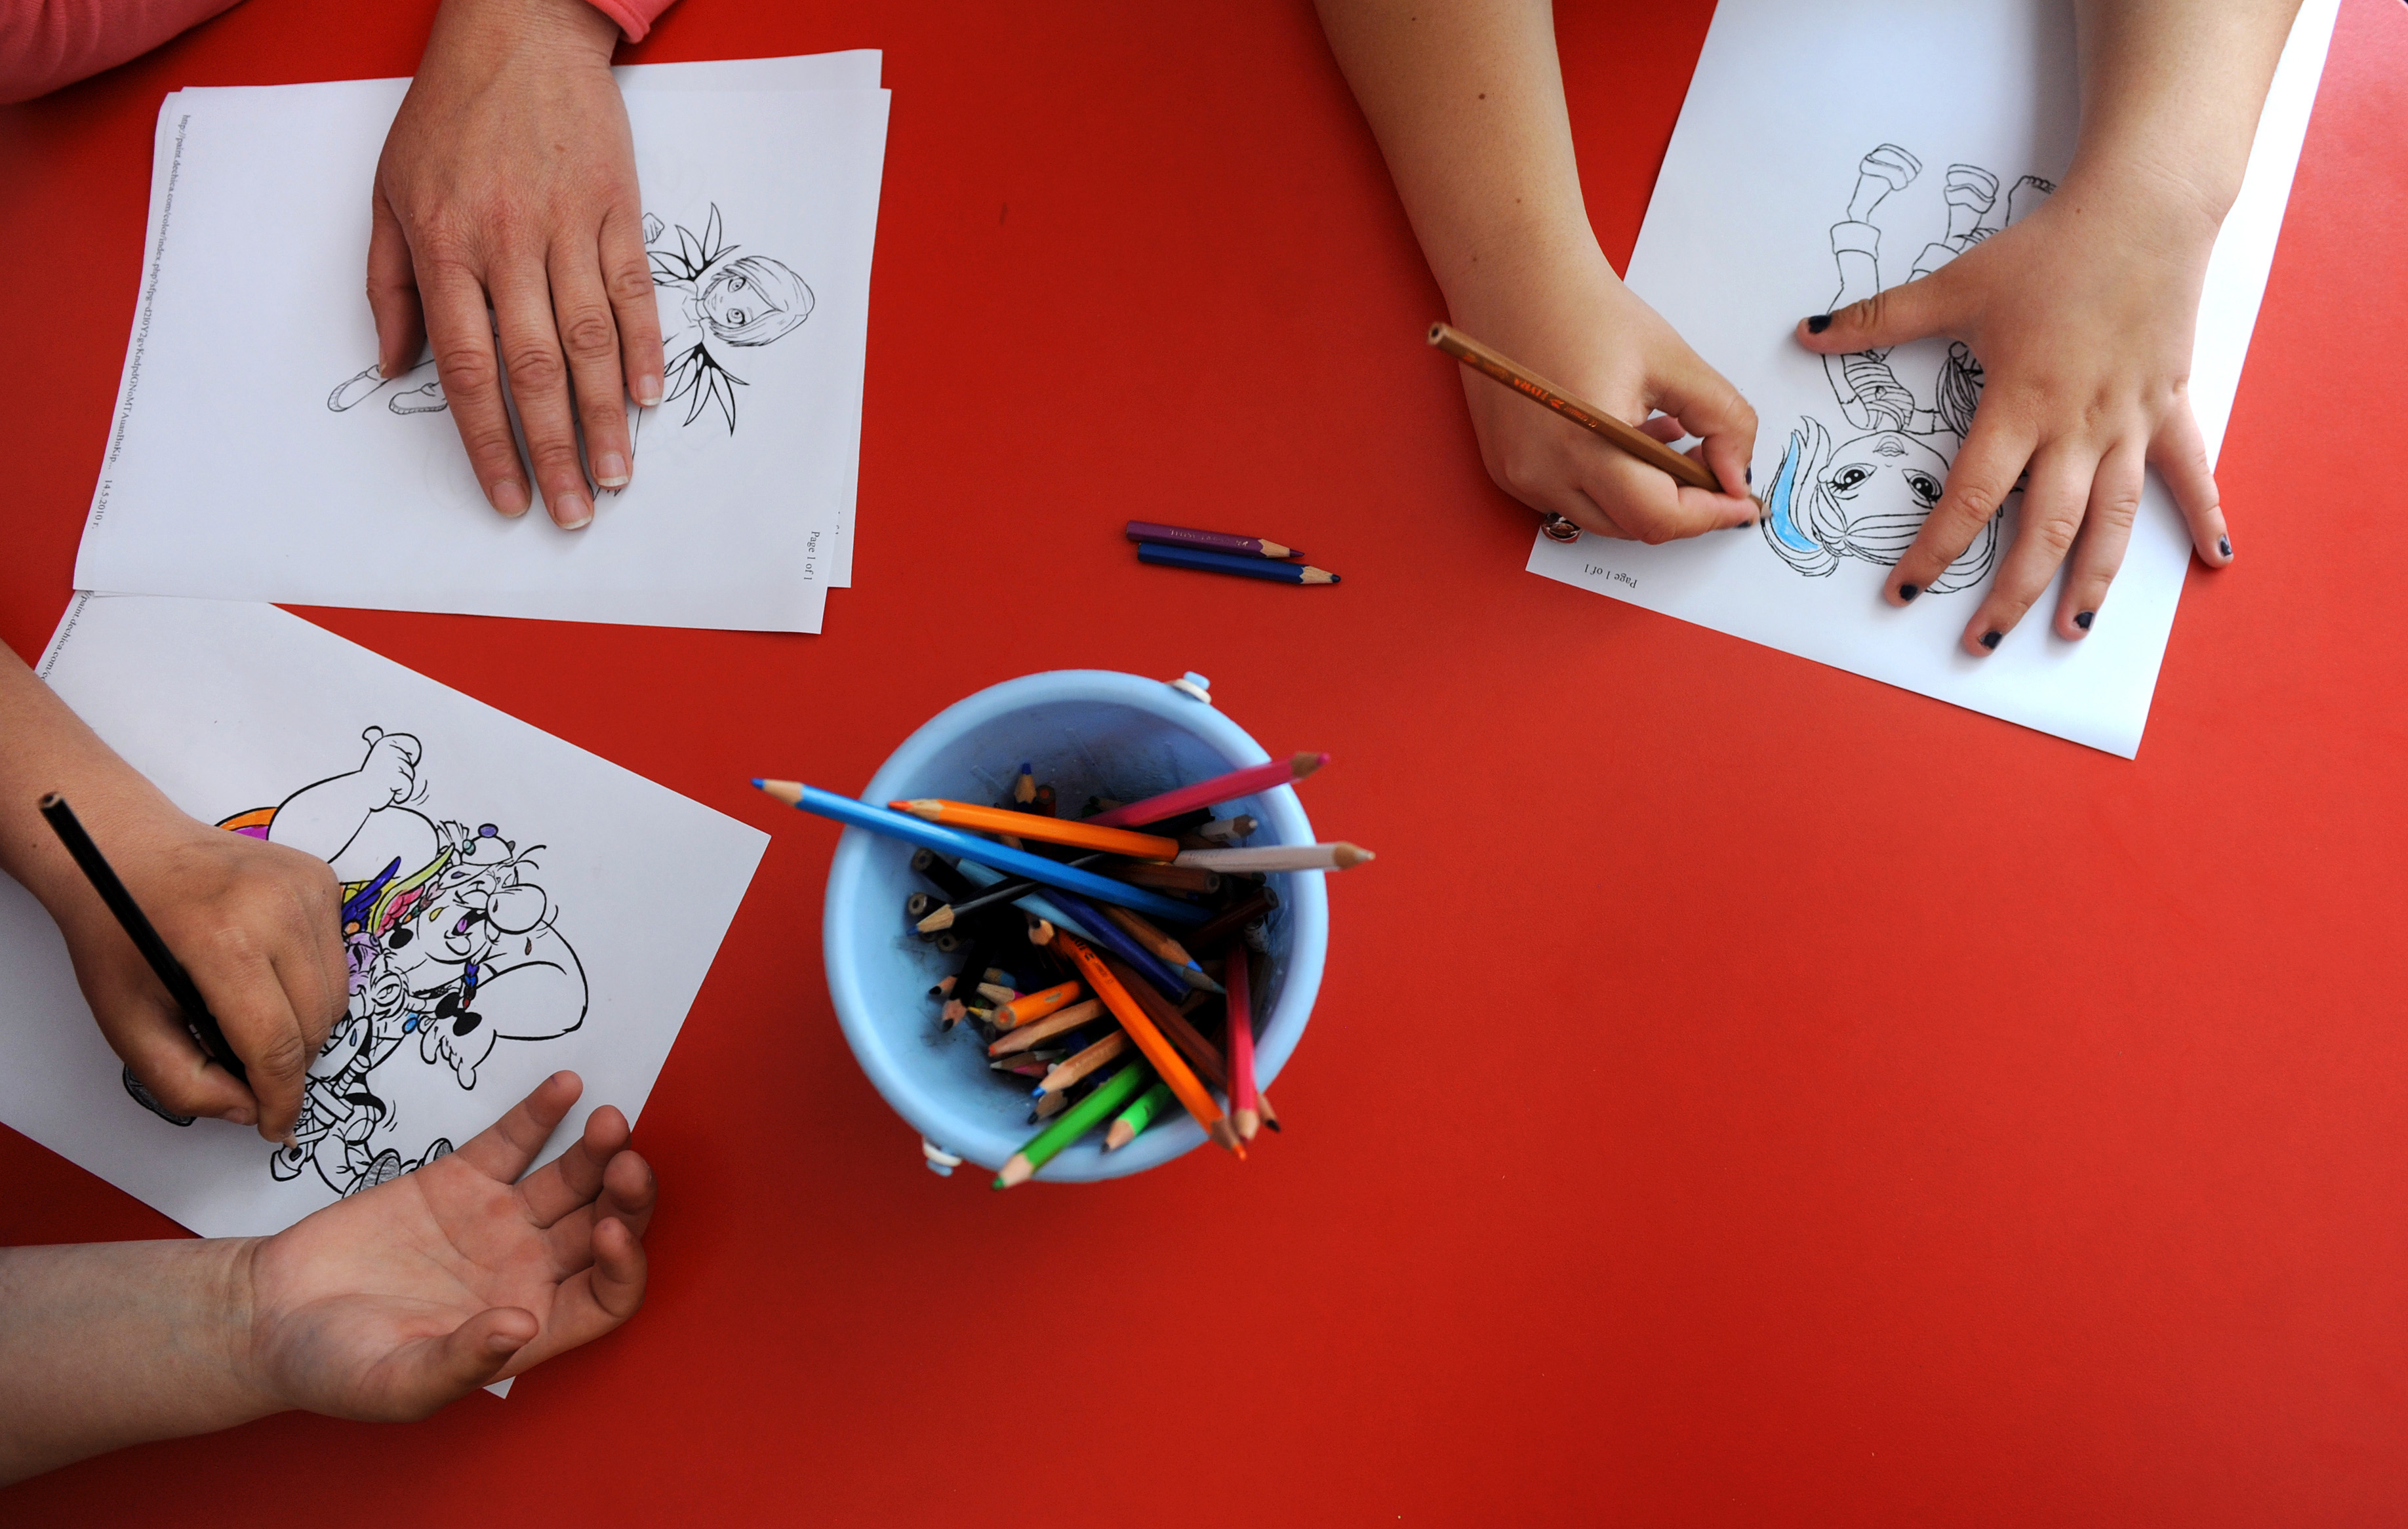 This picture taken on May 14, 2010, shows children colouring a pattern in a Daycare centre. (NIKOLAY DOYCHINOV/AFP via Getty Images)